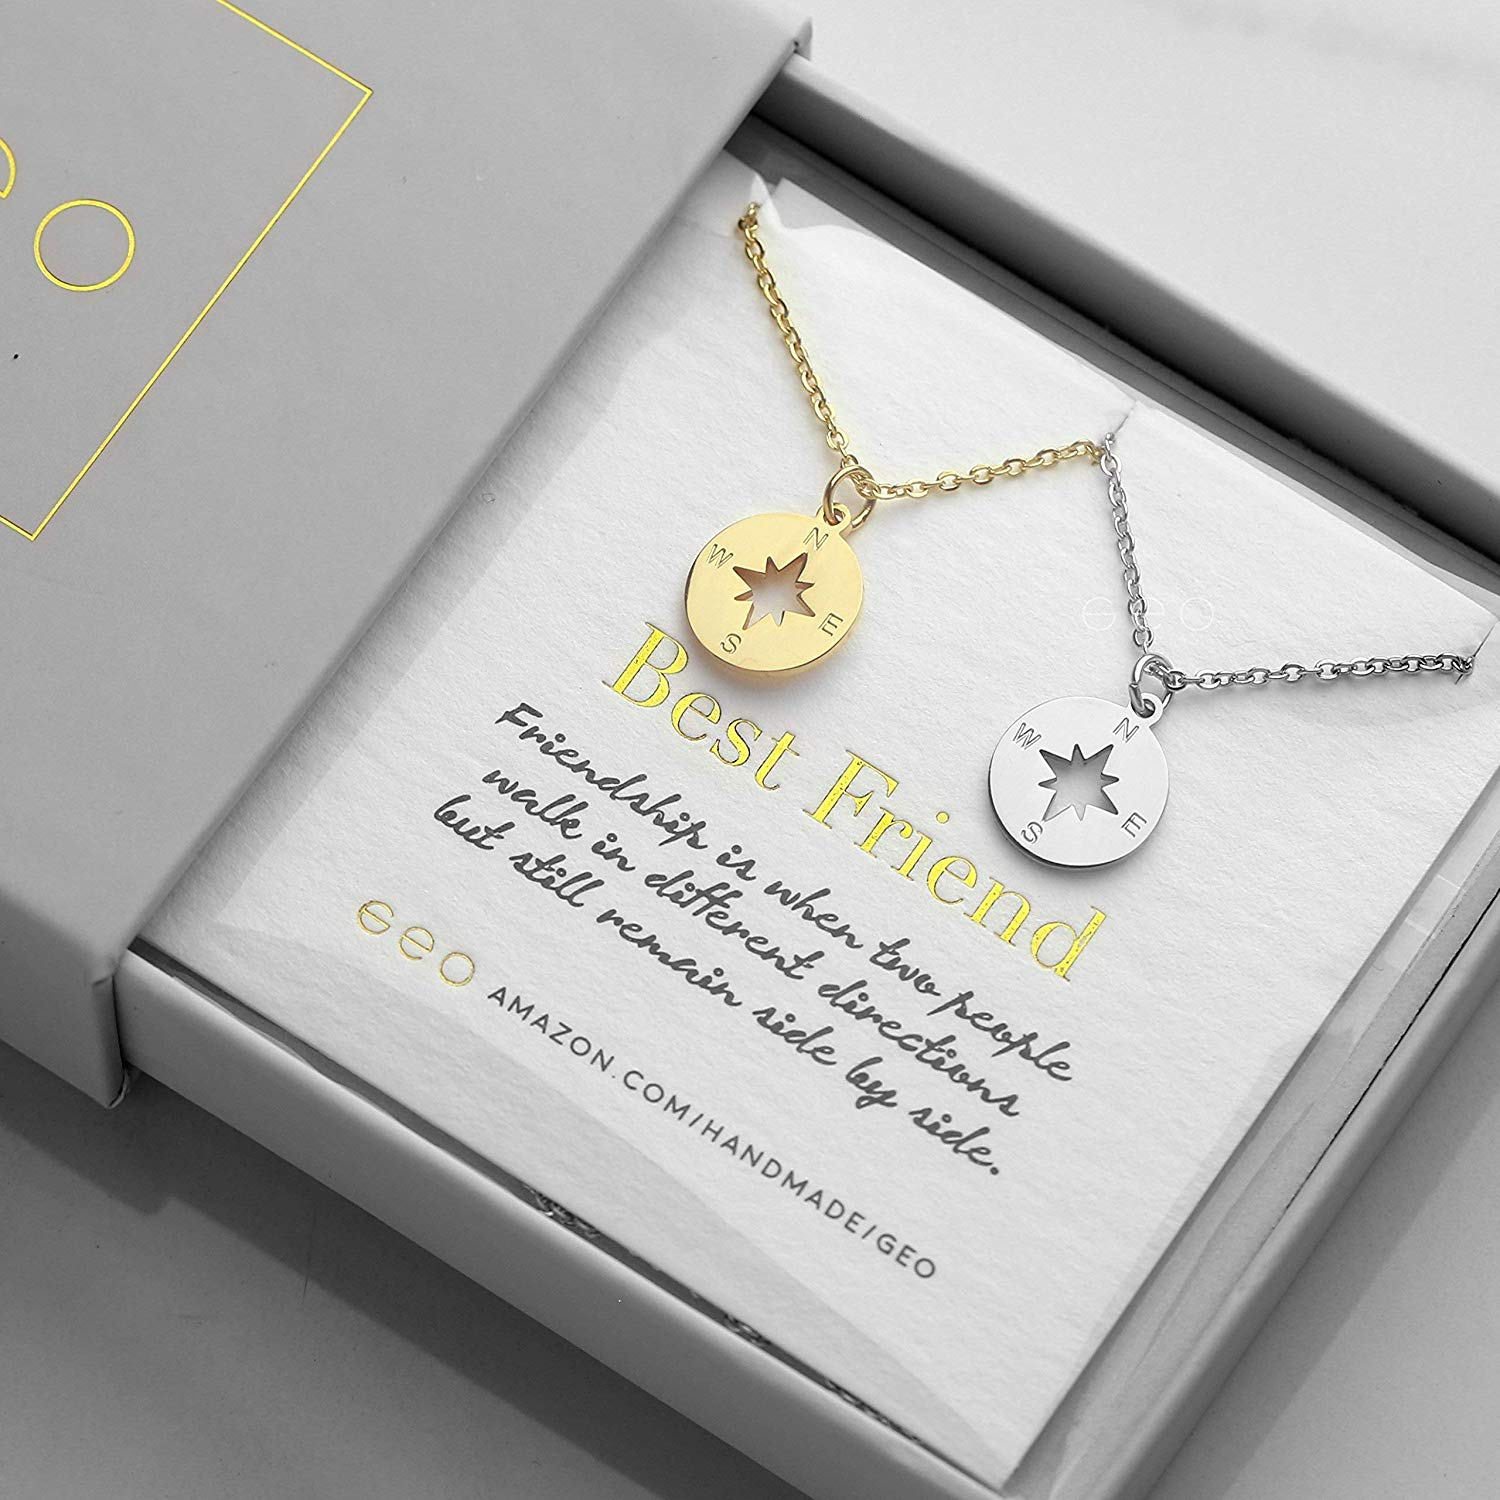 d9c6d2fc29c69a Get Quotations · Gold And Silver Compass Necklaces For Women Best Friend  Necklaces For Two Best Friend Gifts BFF